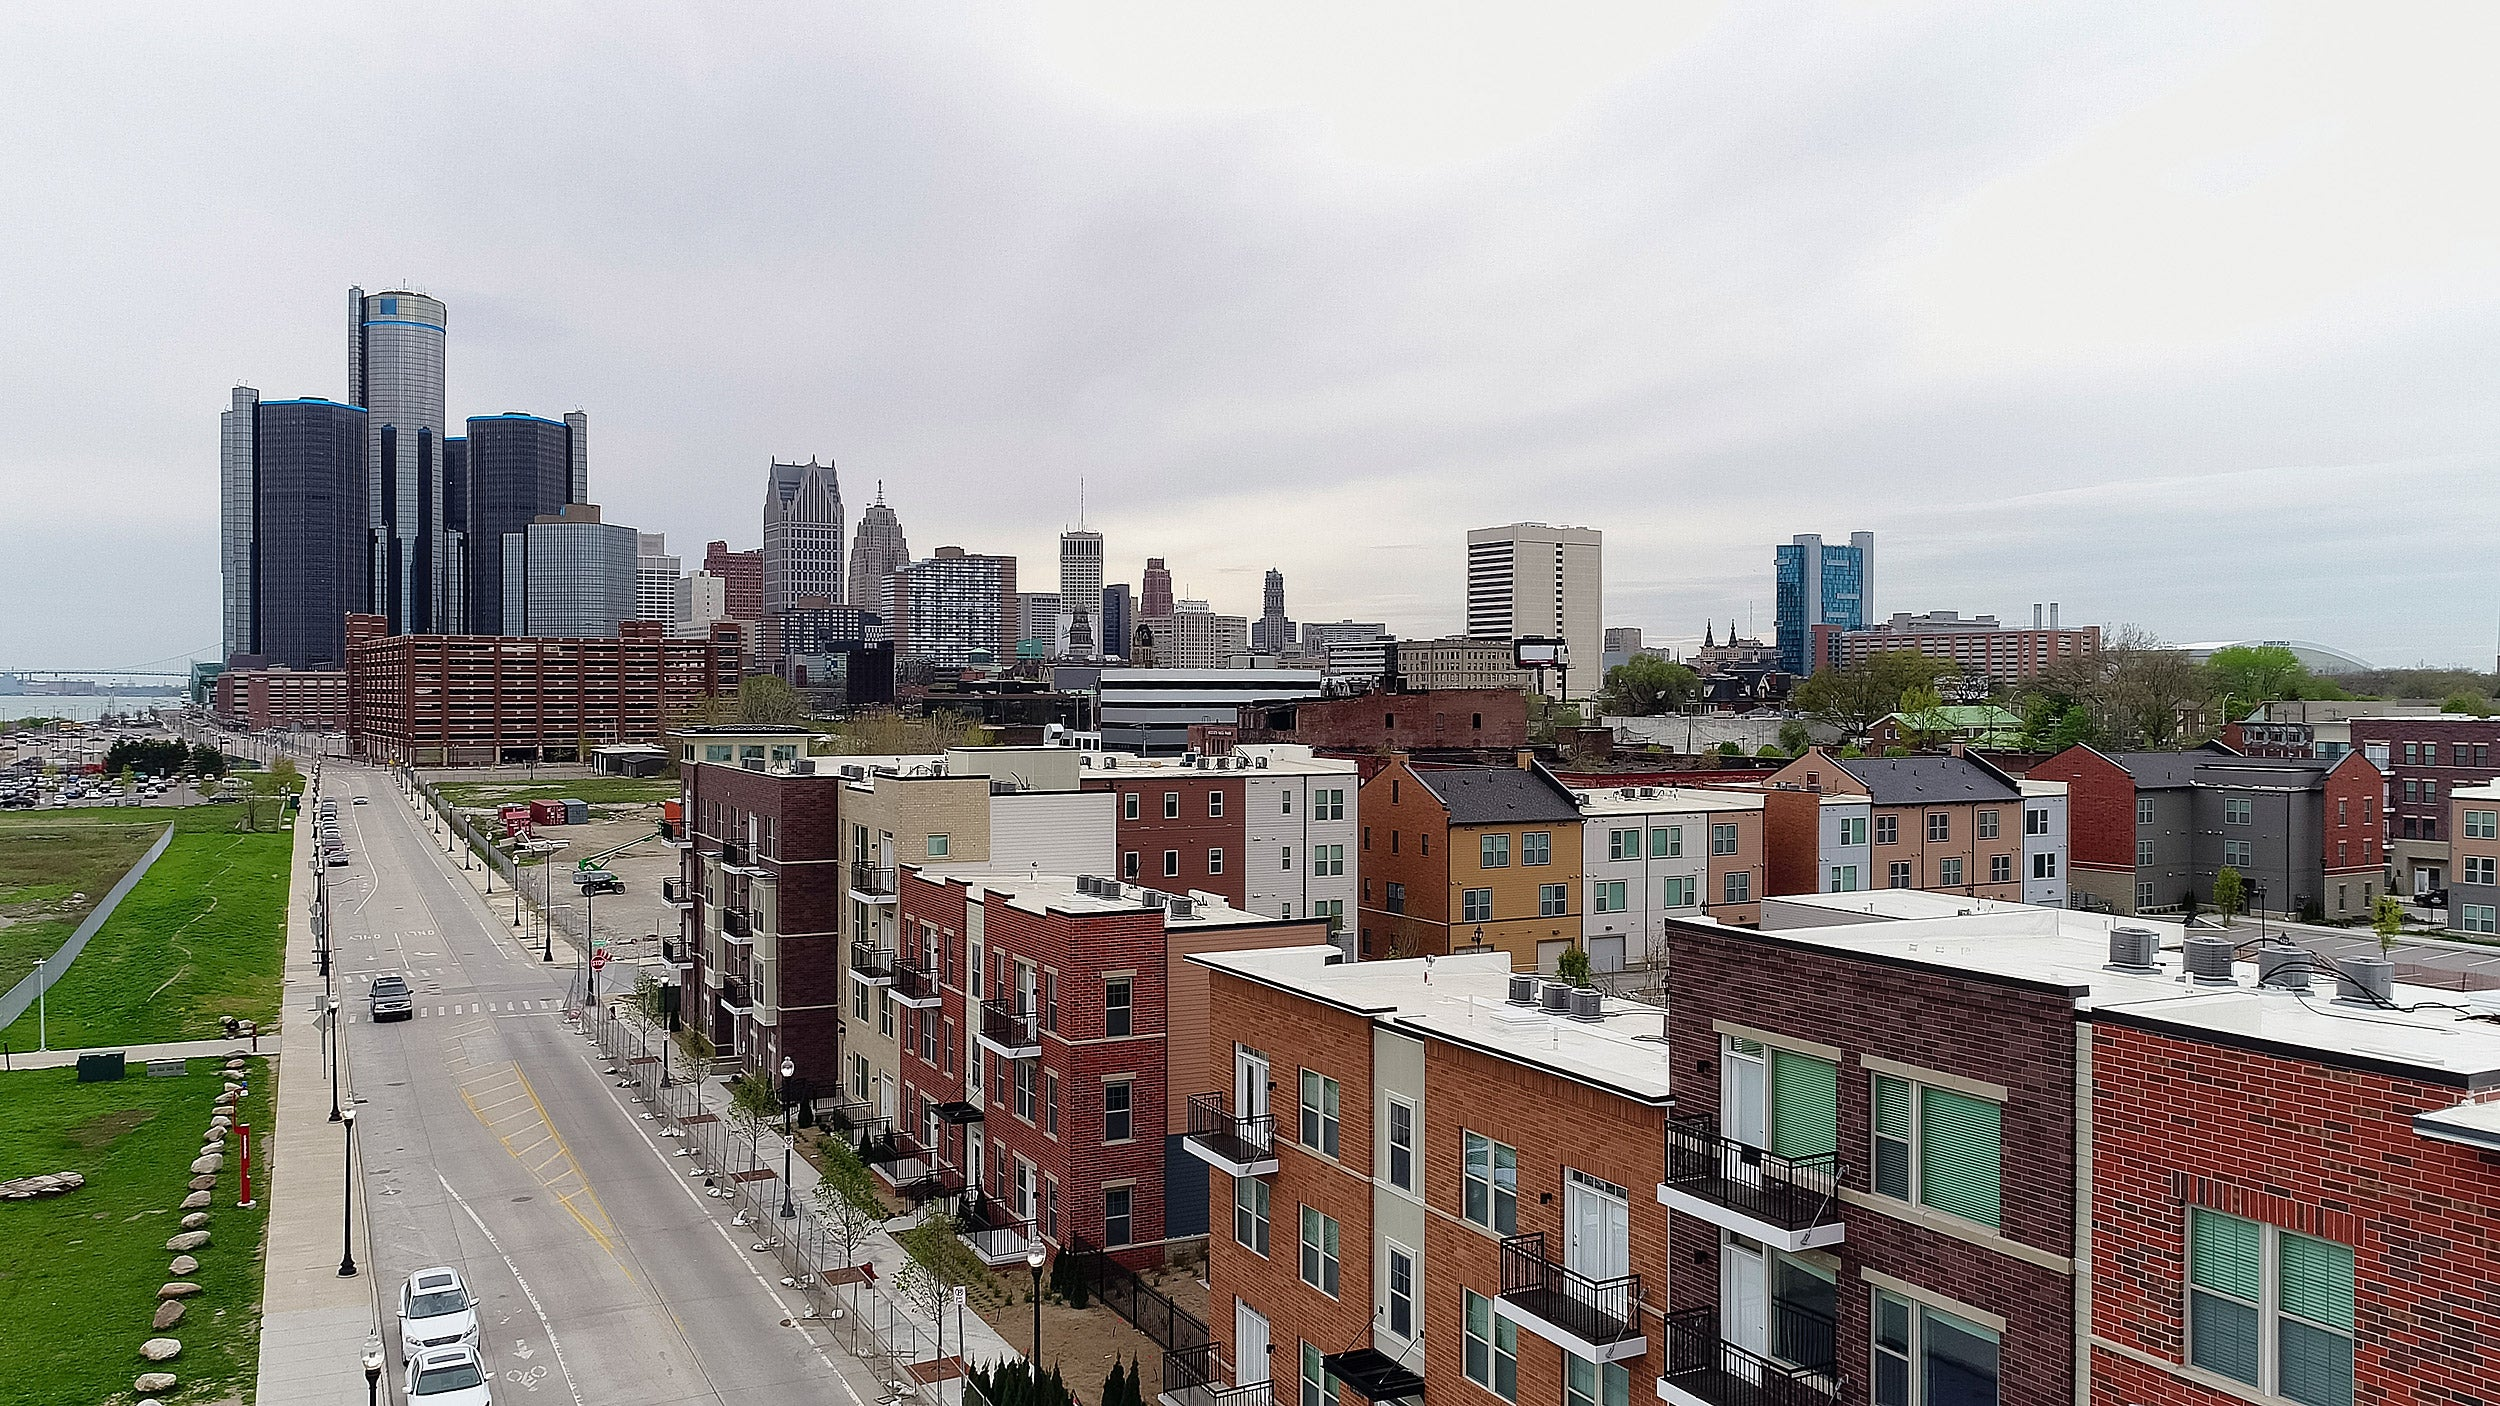 Harvard and the University of Michigan have formed two partnerships designed to encourage economic opportunity in struggling Detroit and to fight the national scourge of opioid addiction.